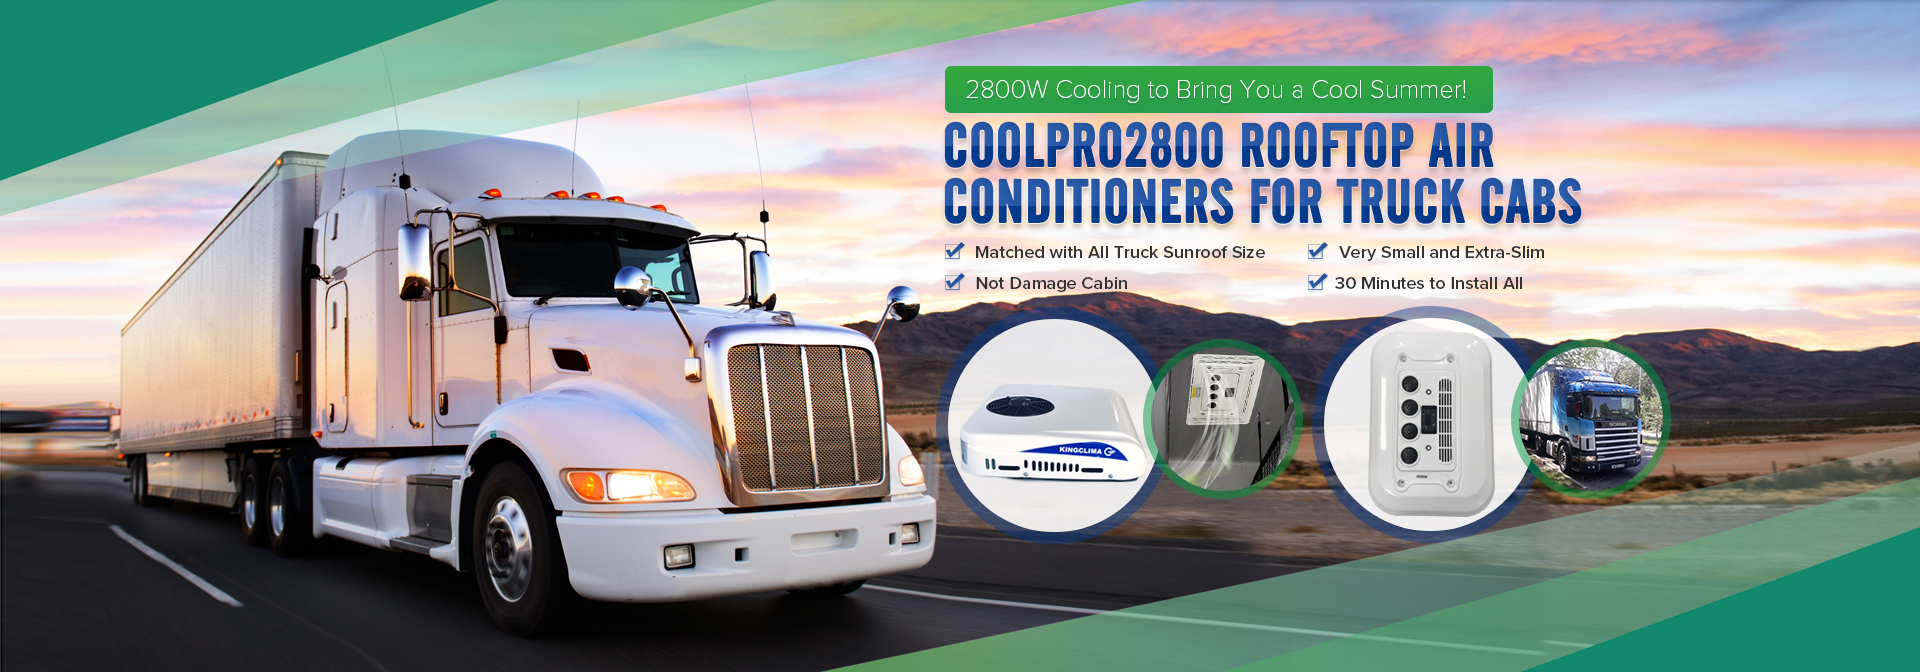 CoolPro2800 sleeper cab air conditioner